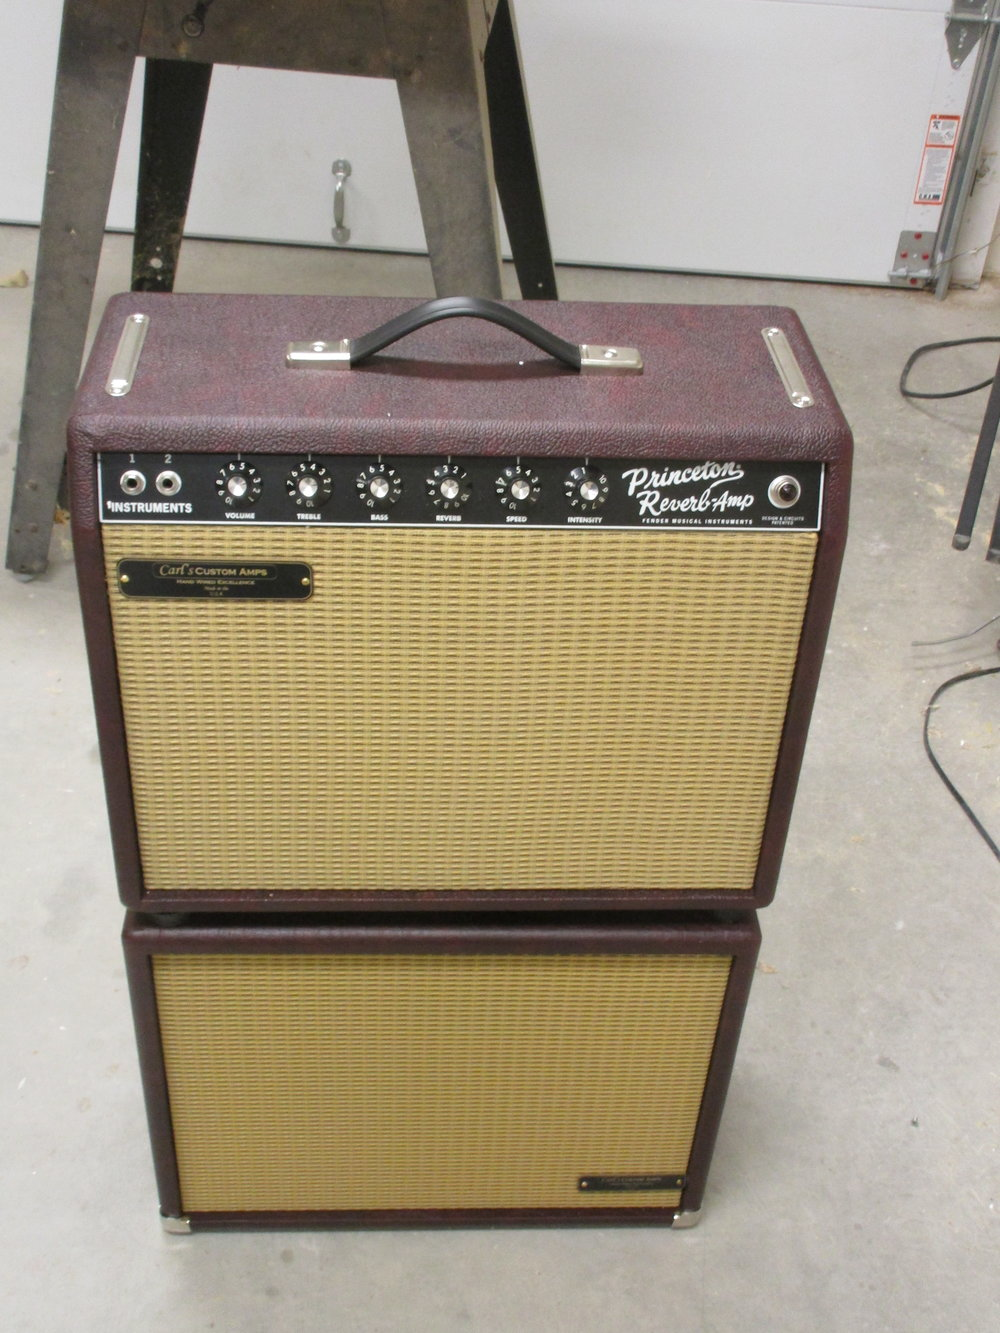 Reissue Princeton Reverb now handwired and upgraded with a 1X12 matching extension cab.